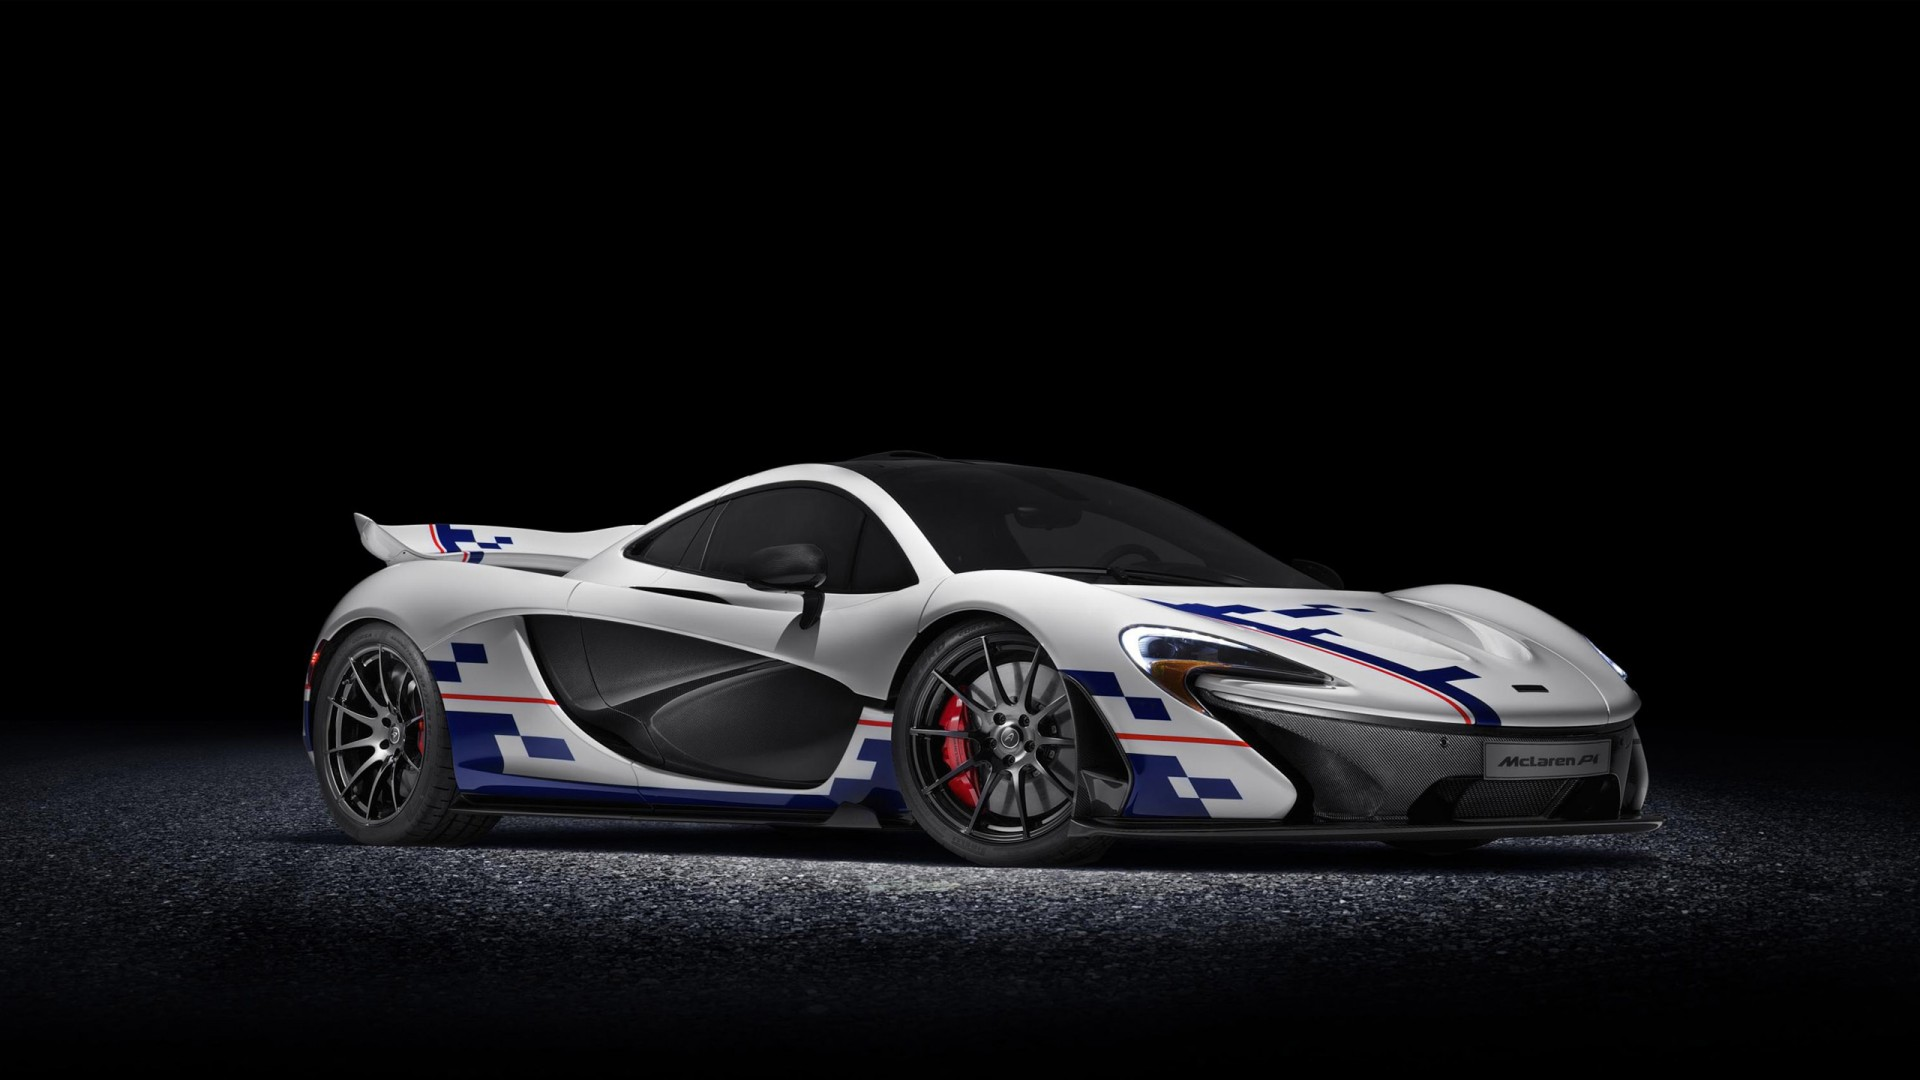 Bmw Cars Wallpapers 2012 Hd 2015 Mclaren P1 Prost Wallpaper Hd Car Wallpapers Id 5454